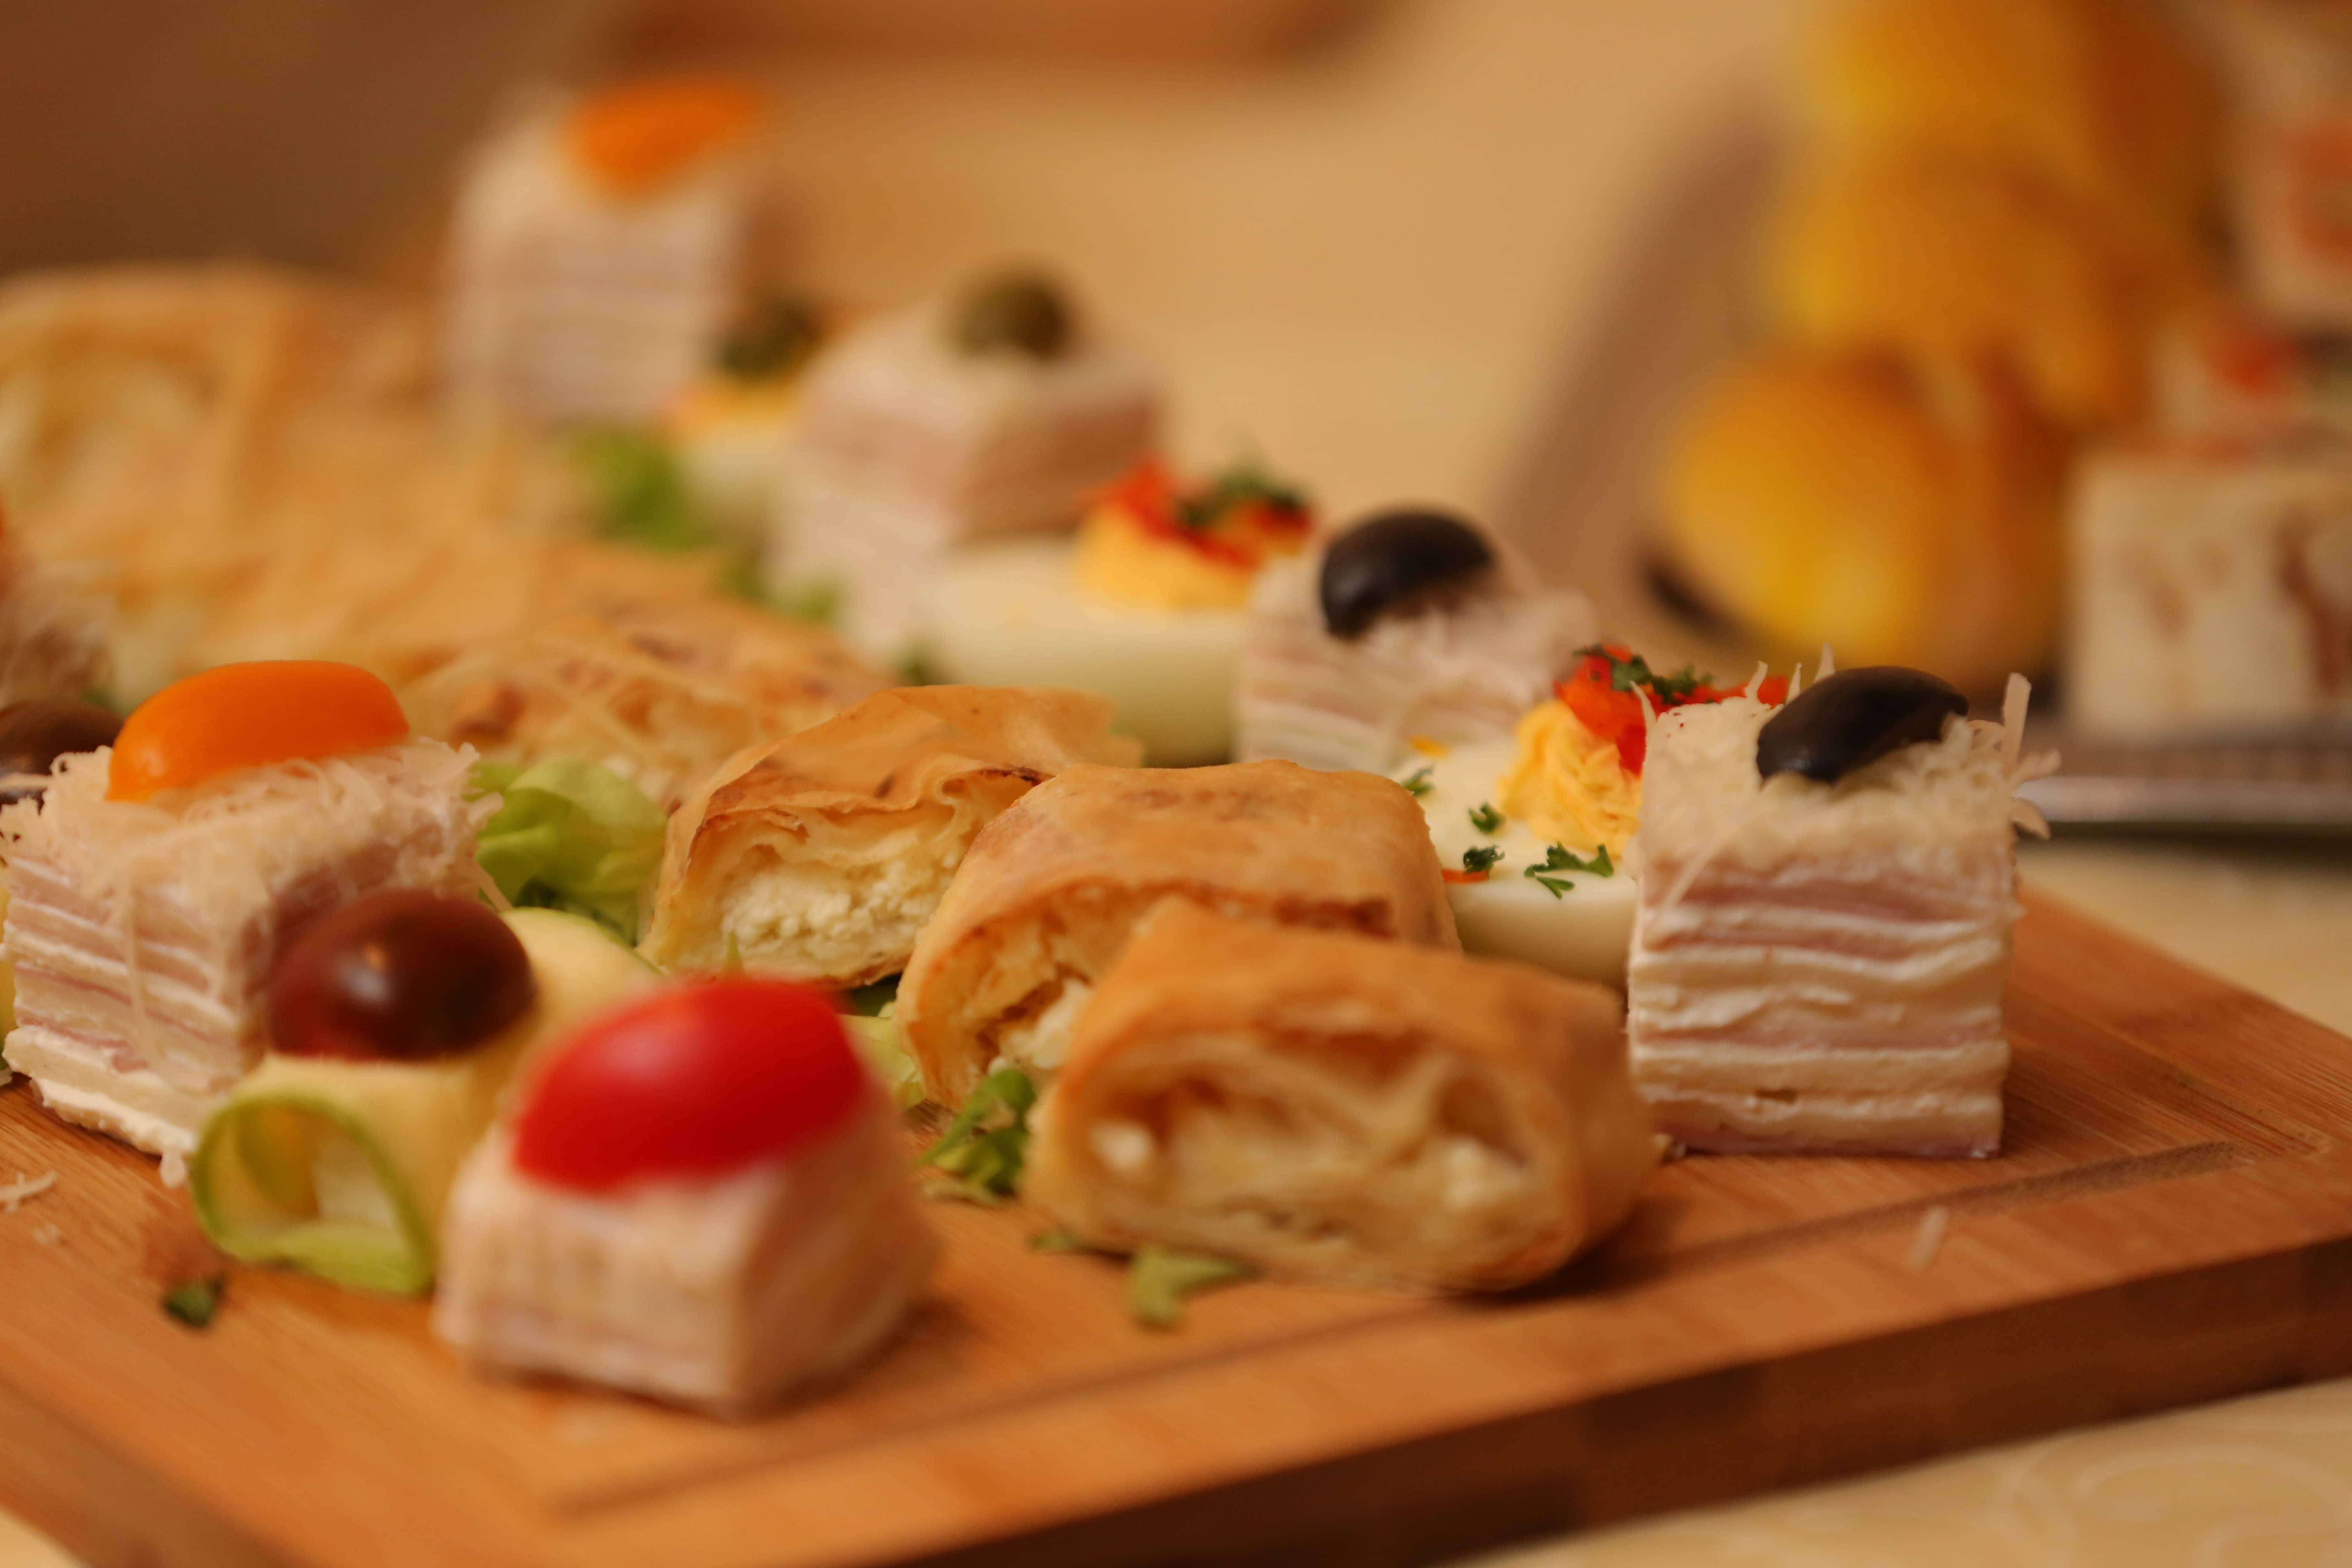 Free Picture Cheese Snack Baked Goods Plate Lunch Dish Delicious Food Sushi Meal